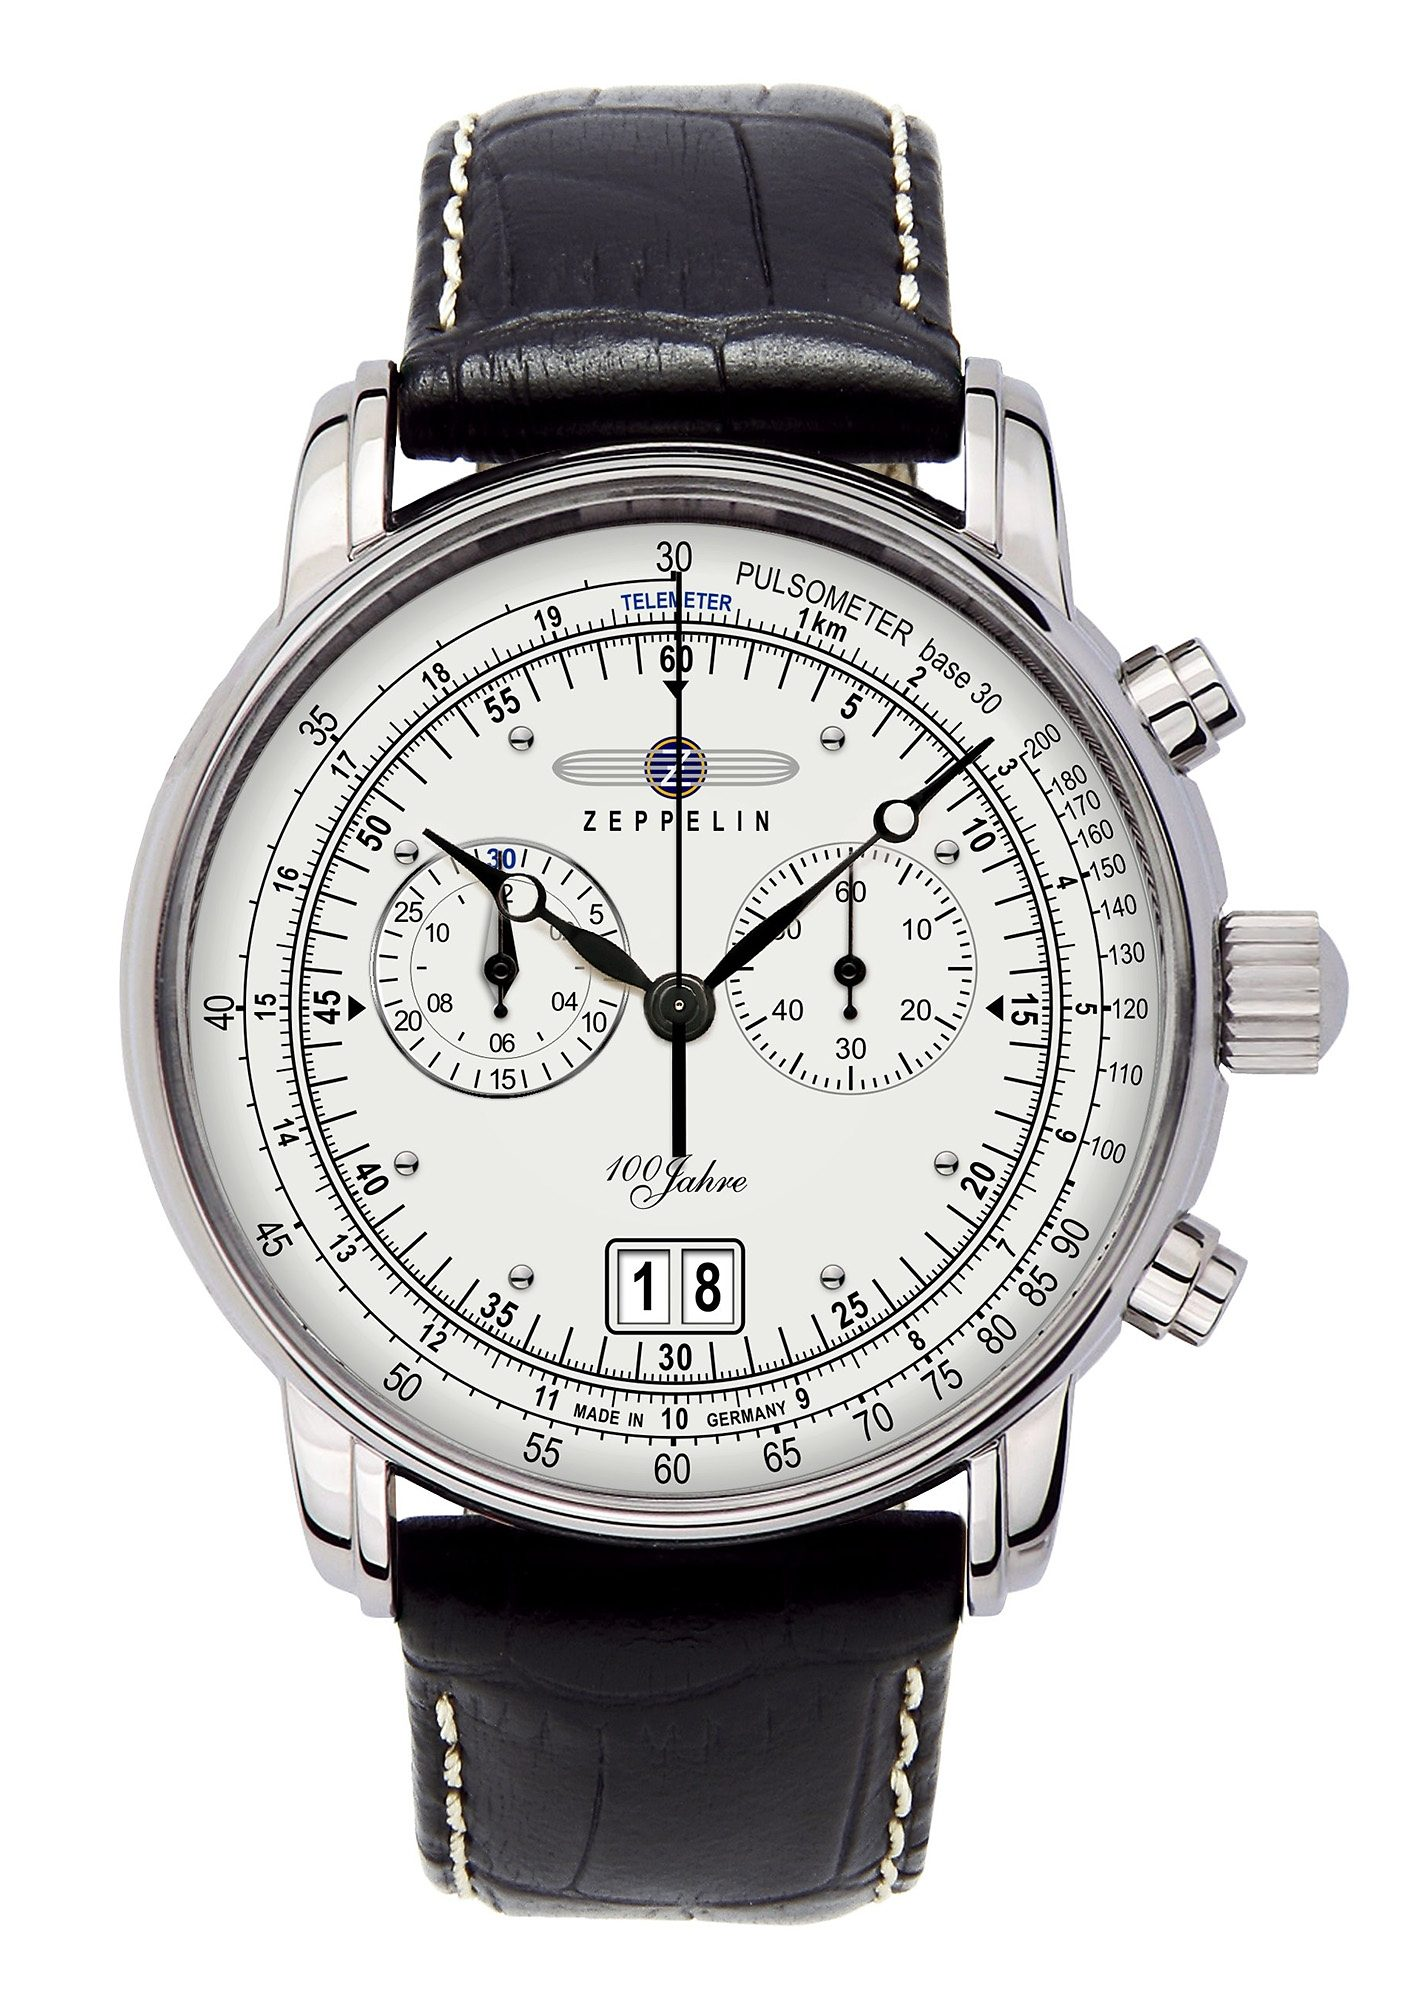 ZEPPELIN Chronograph »100 Jahre Zeppelin, 7690-1«, Made in Germany